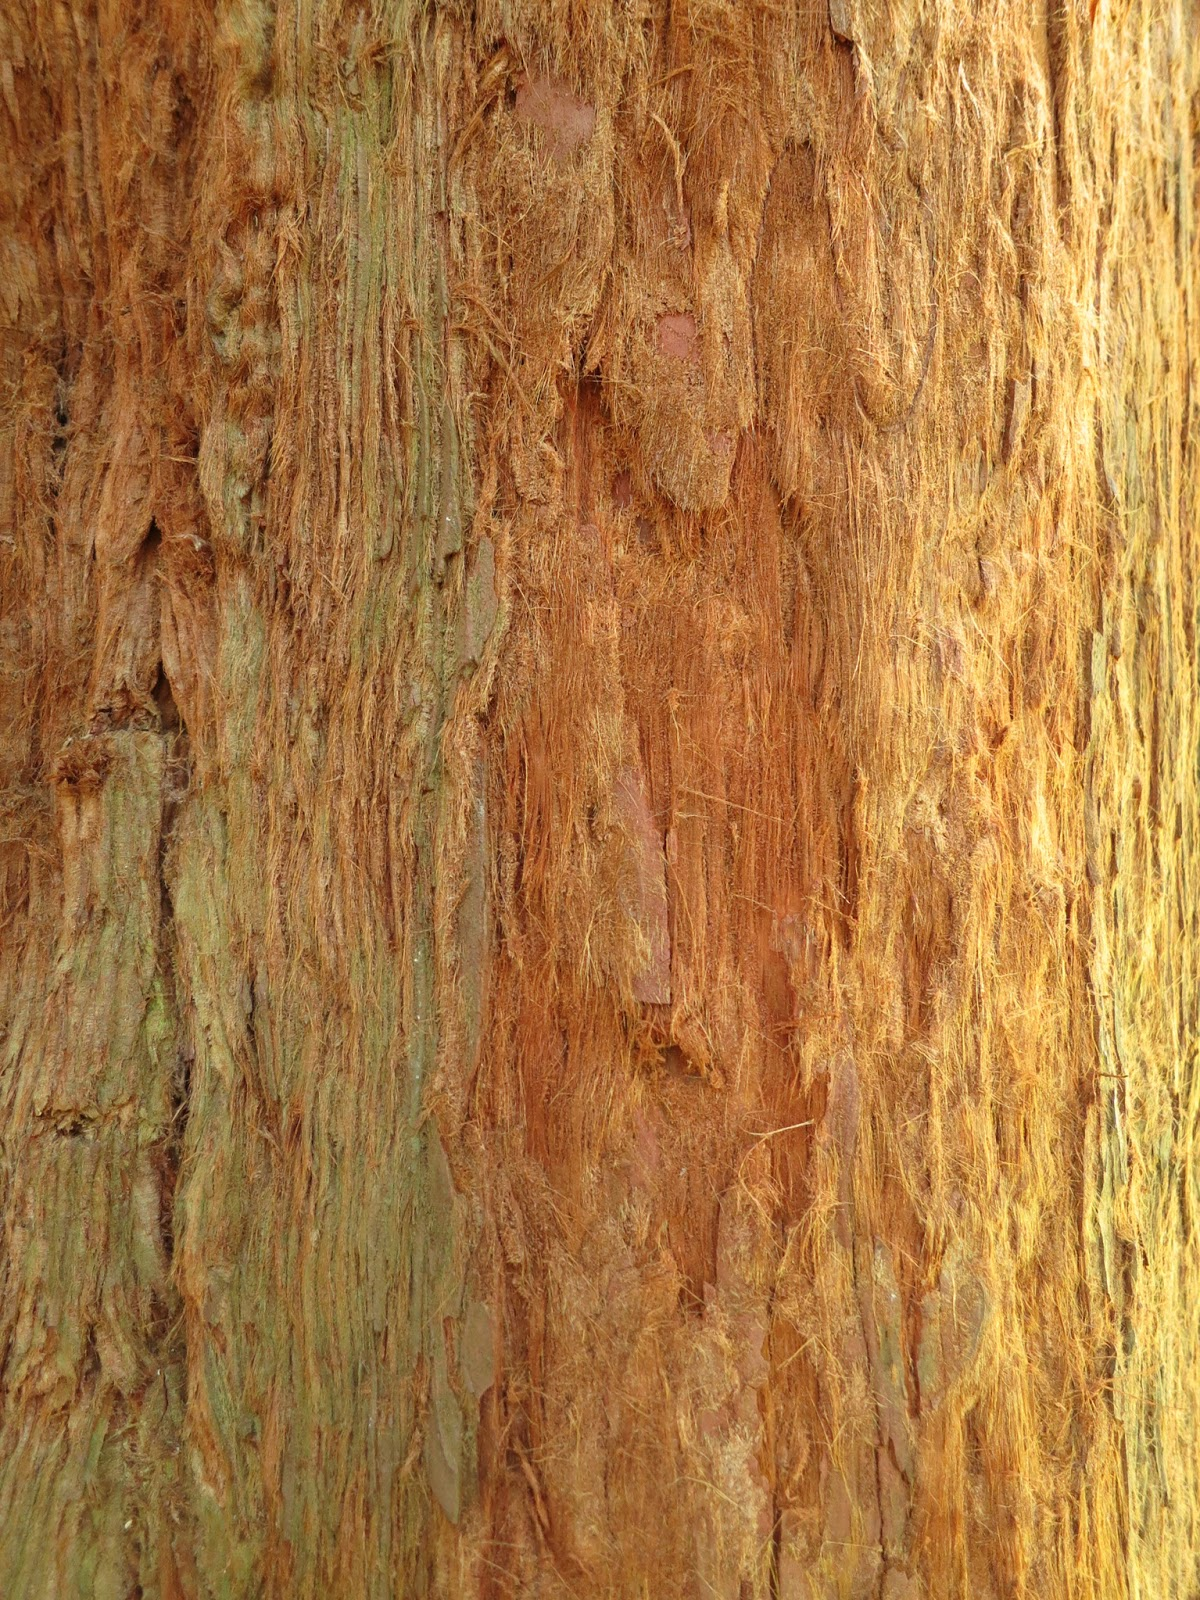 Close up of fibrous bark of redwood tree showing variety of colours and textures.